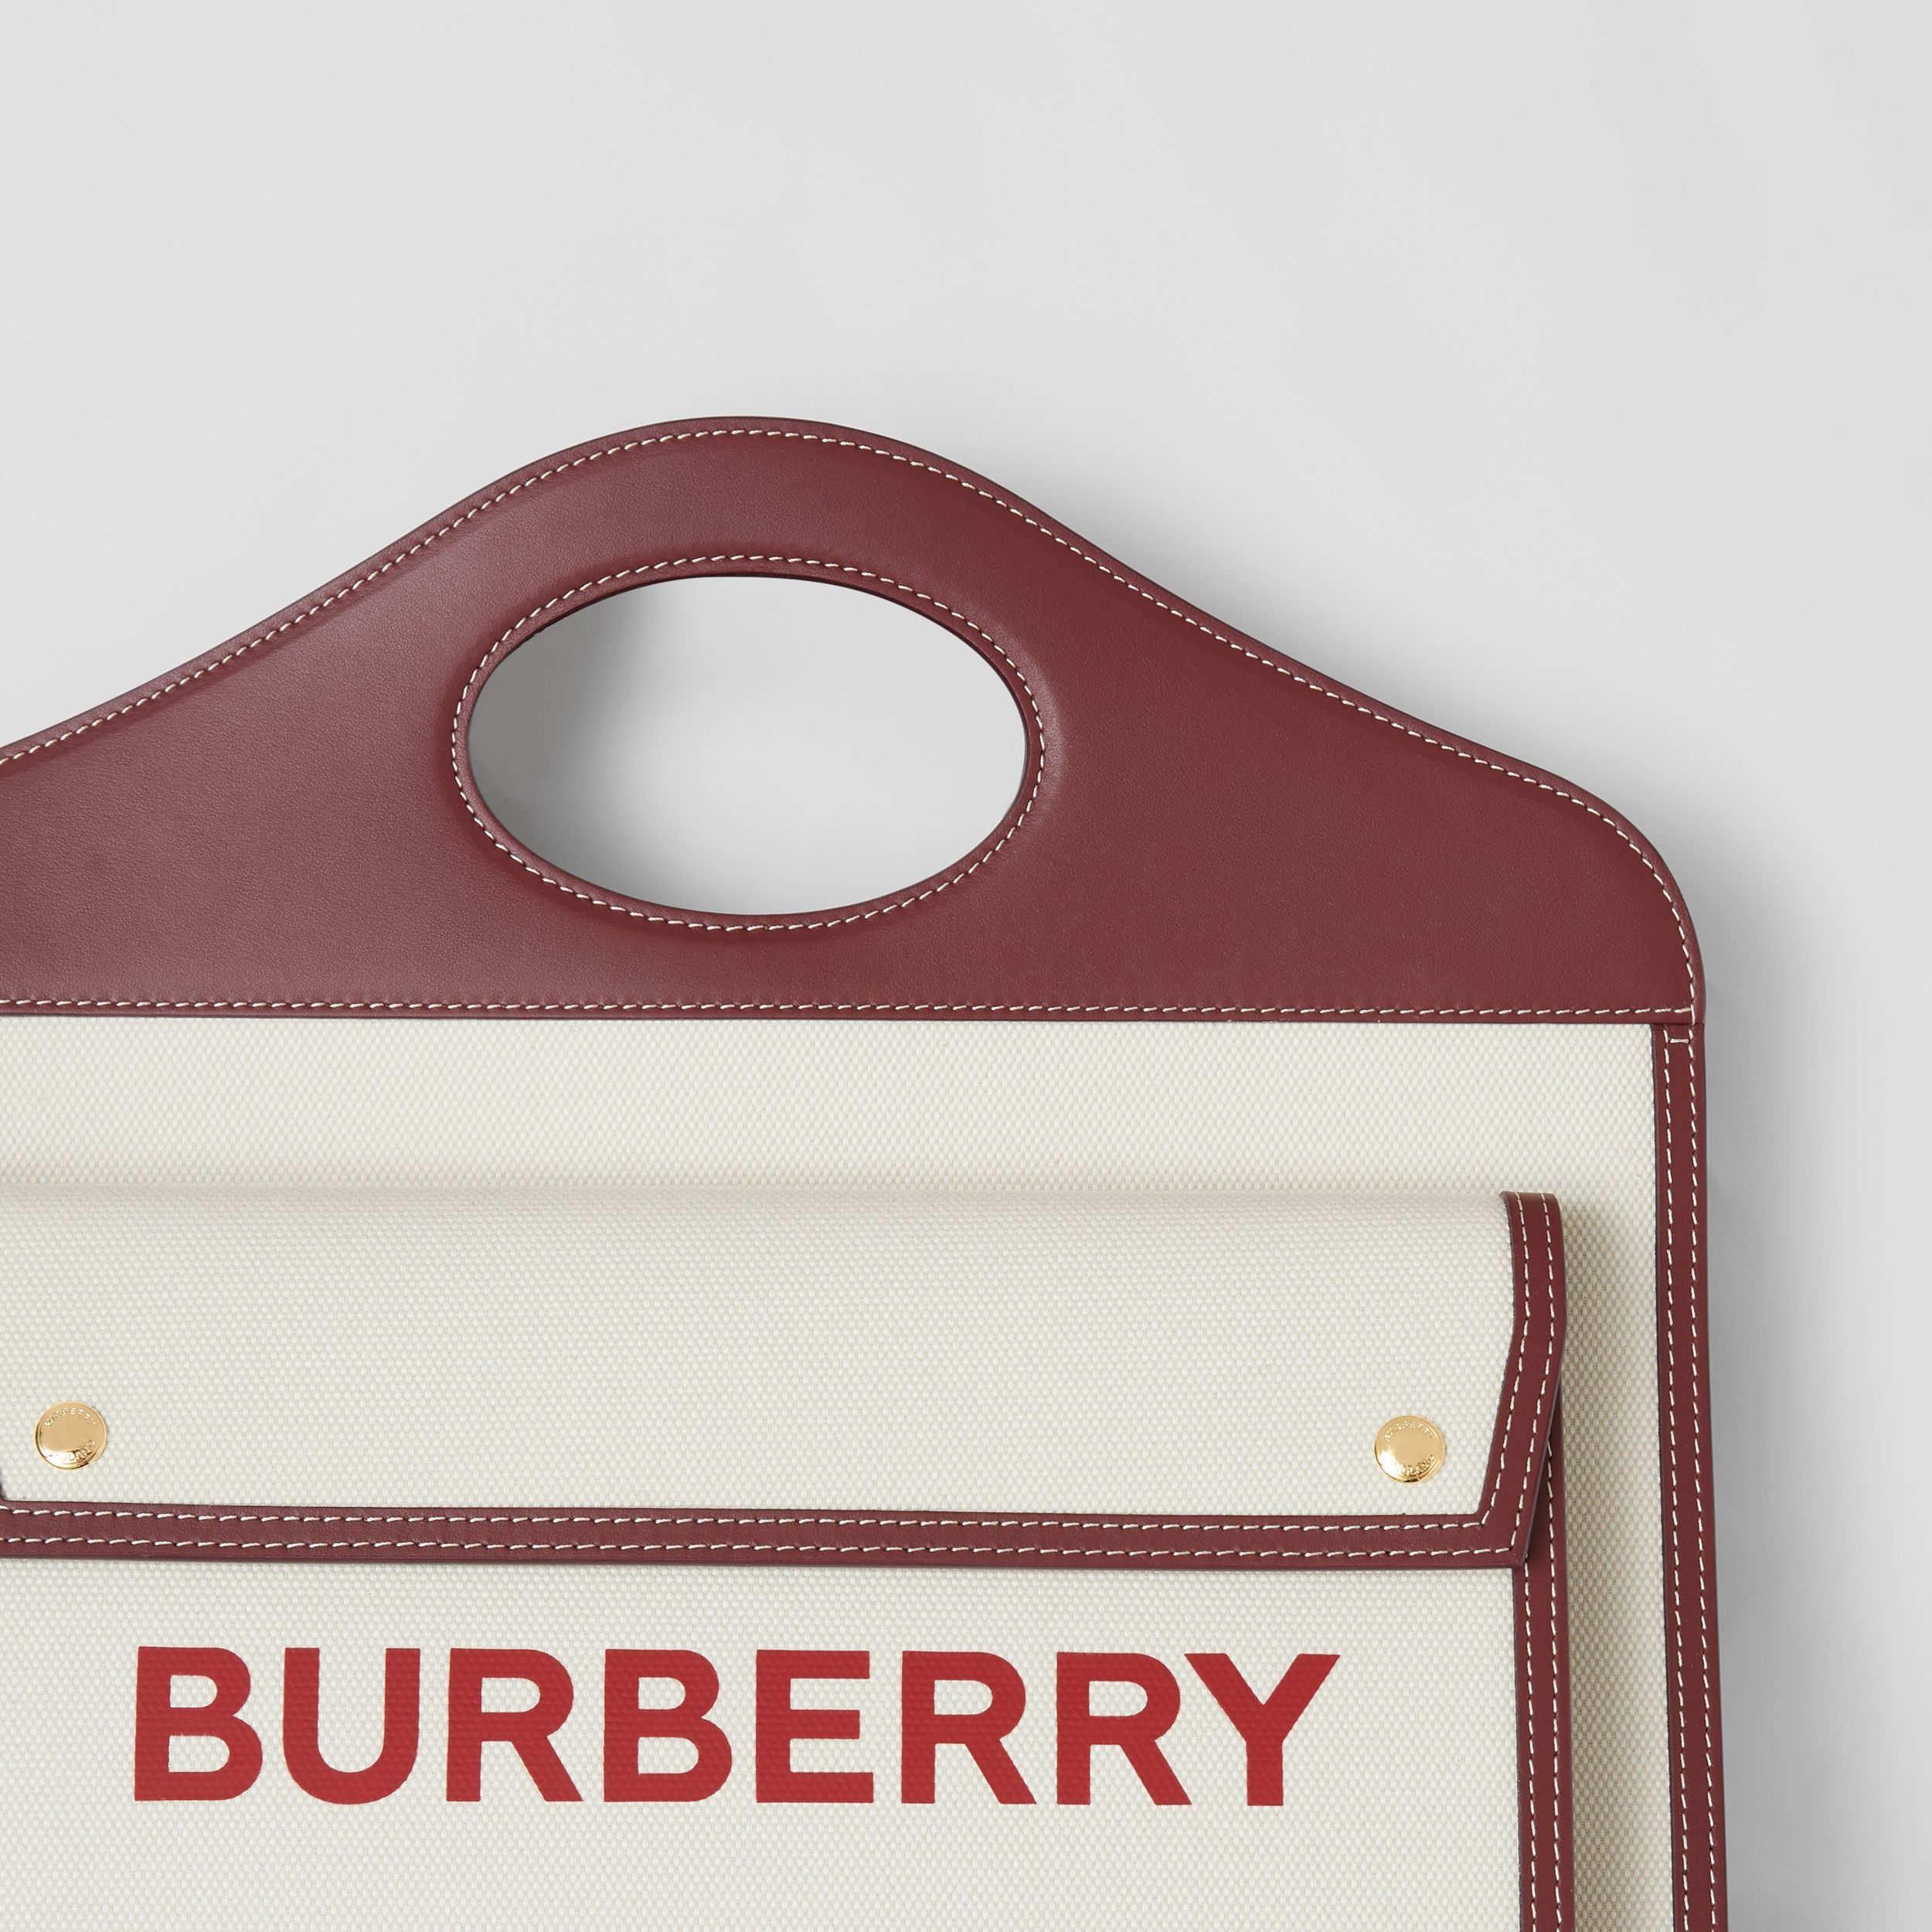 Medium Two-tone Canvas and Leather Pocket Bag in Natural/garnet - Women | Burberry - 2